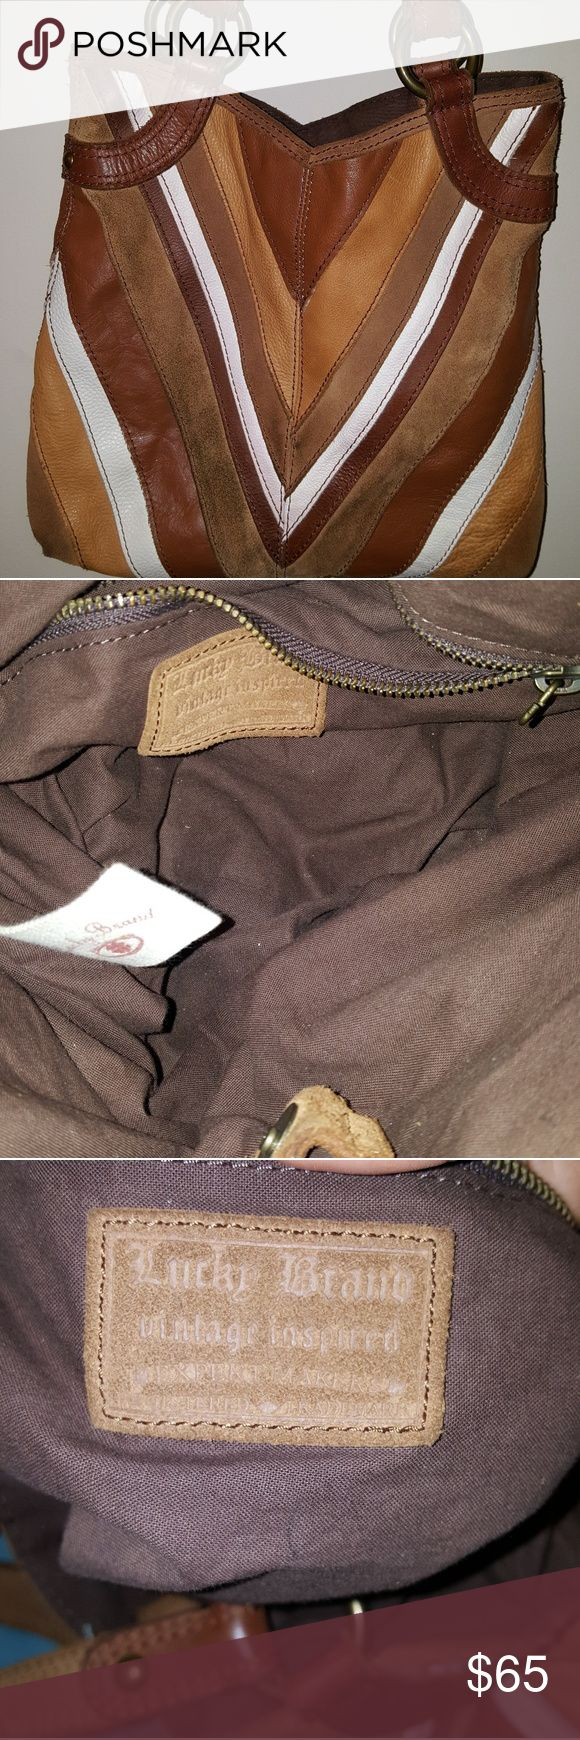 Lucky brand purse Brown , nude, and white leather suede lucky brand purse. Clean inside. Minimal signs of wear such as some discoloration on suede part of purse. Lucky Brand Bags Shoulder Bags